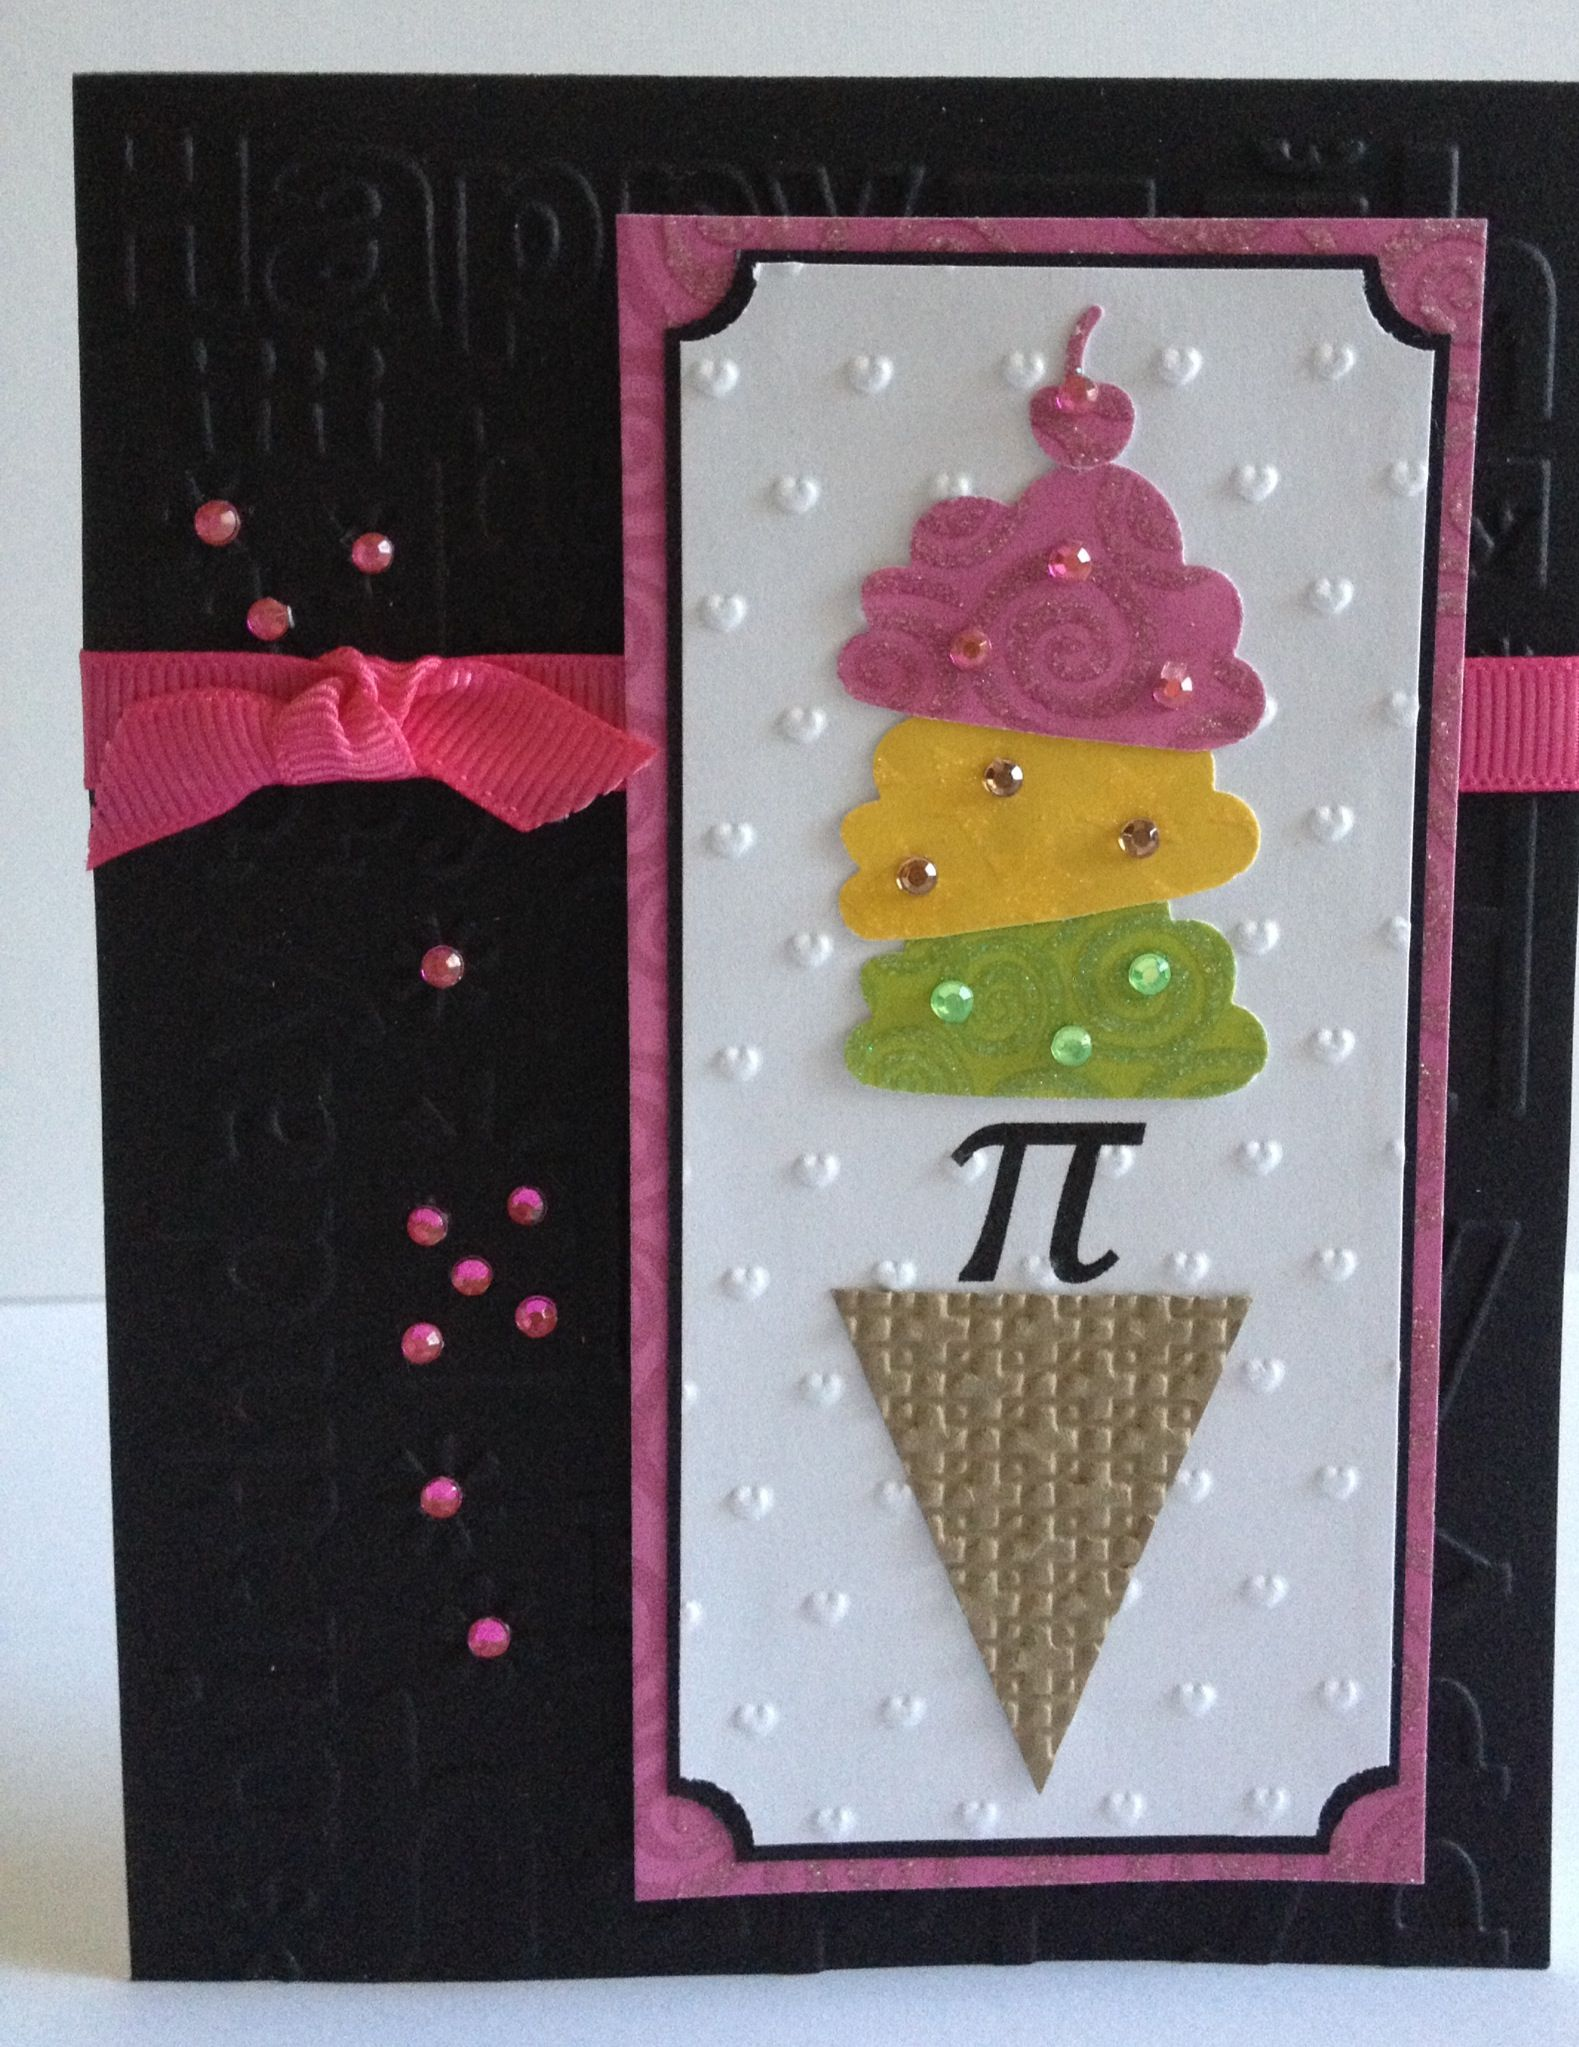 Birthday Card For Your Favorite Math Teacher A Little Pi And Ice Cream Or Pi A La Mode Greeting Cards Design Inspiration Card Making Greeting Card Design